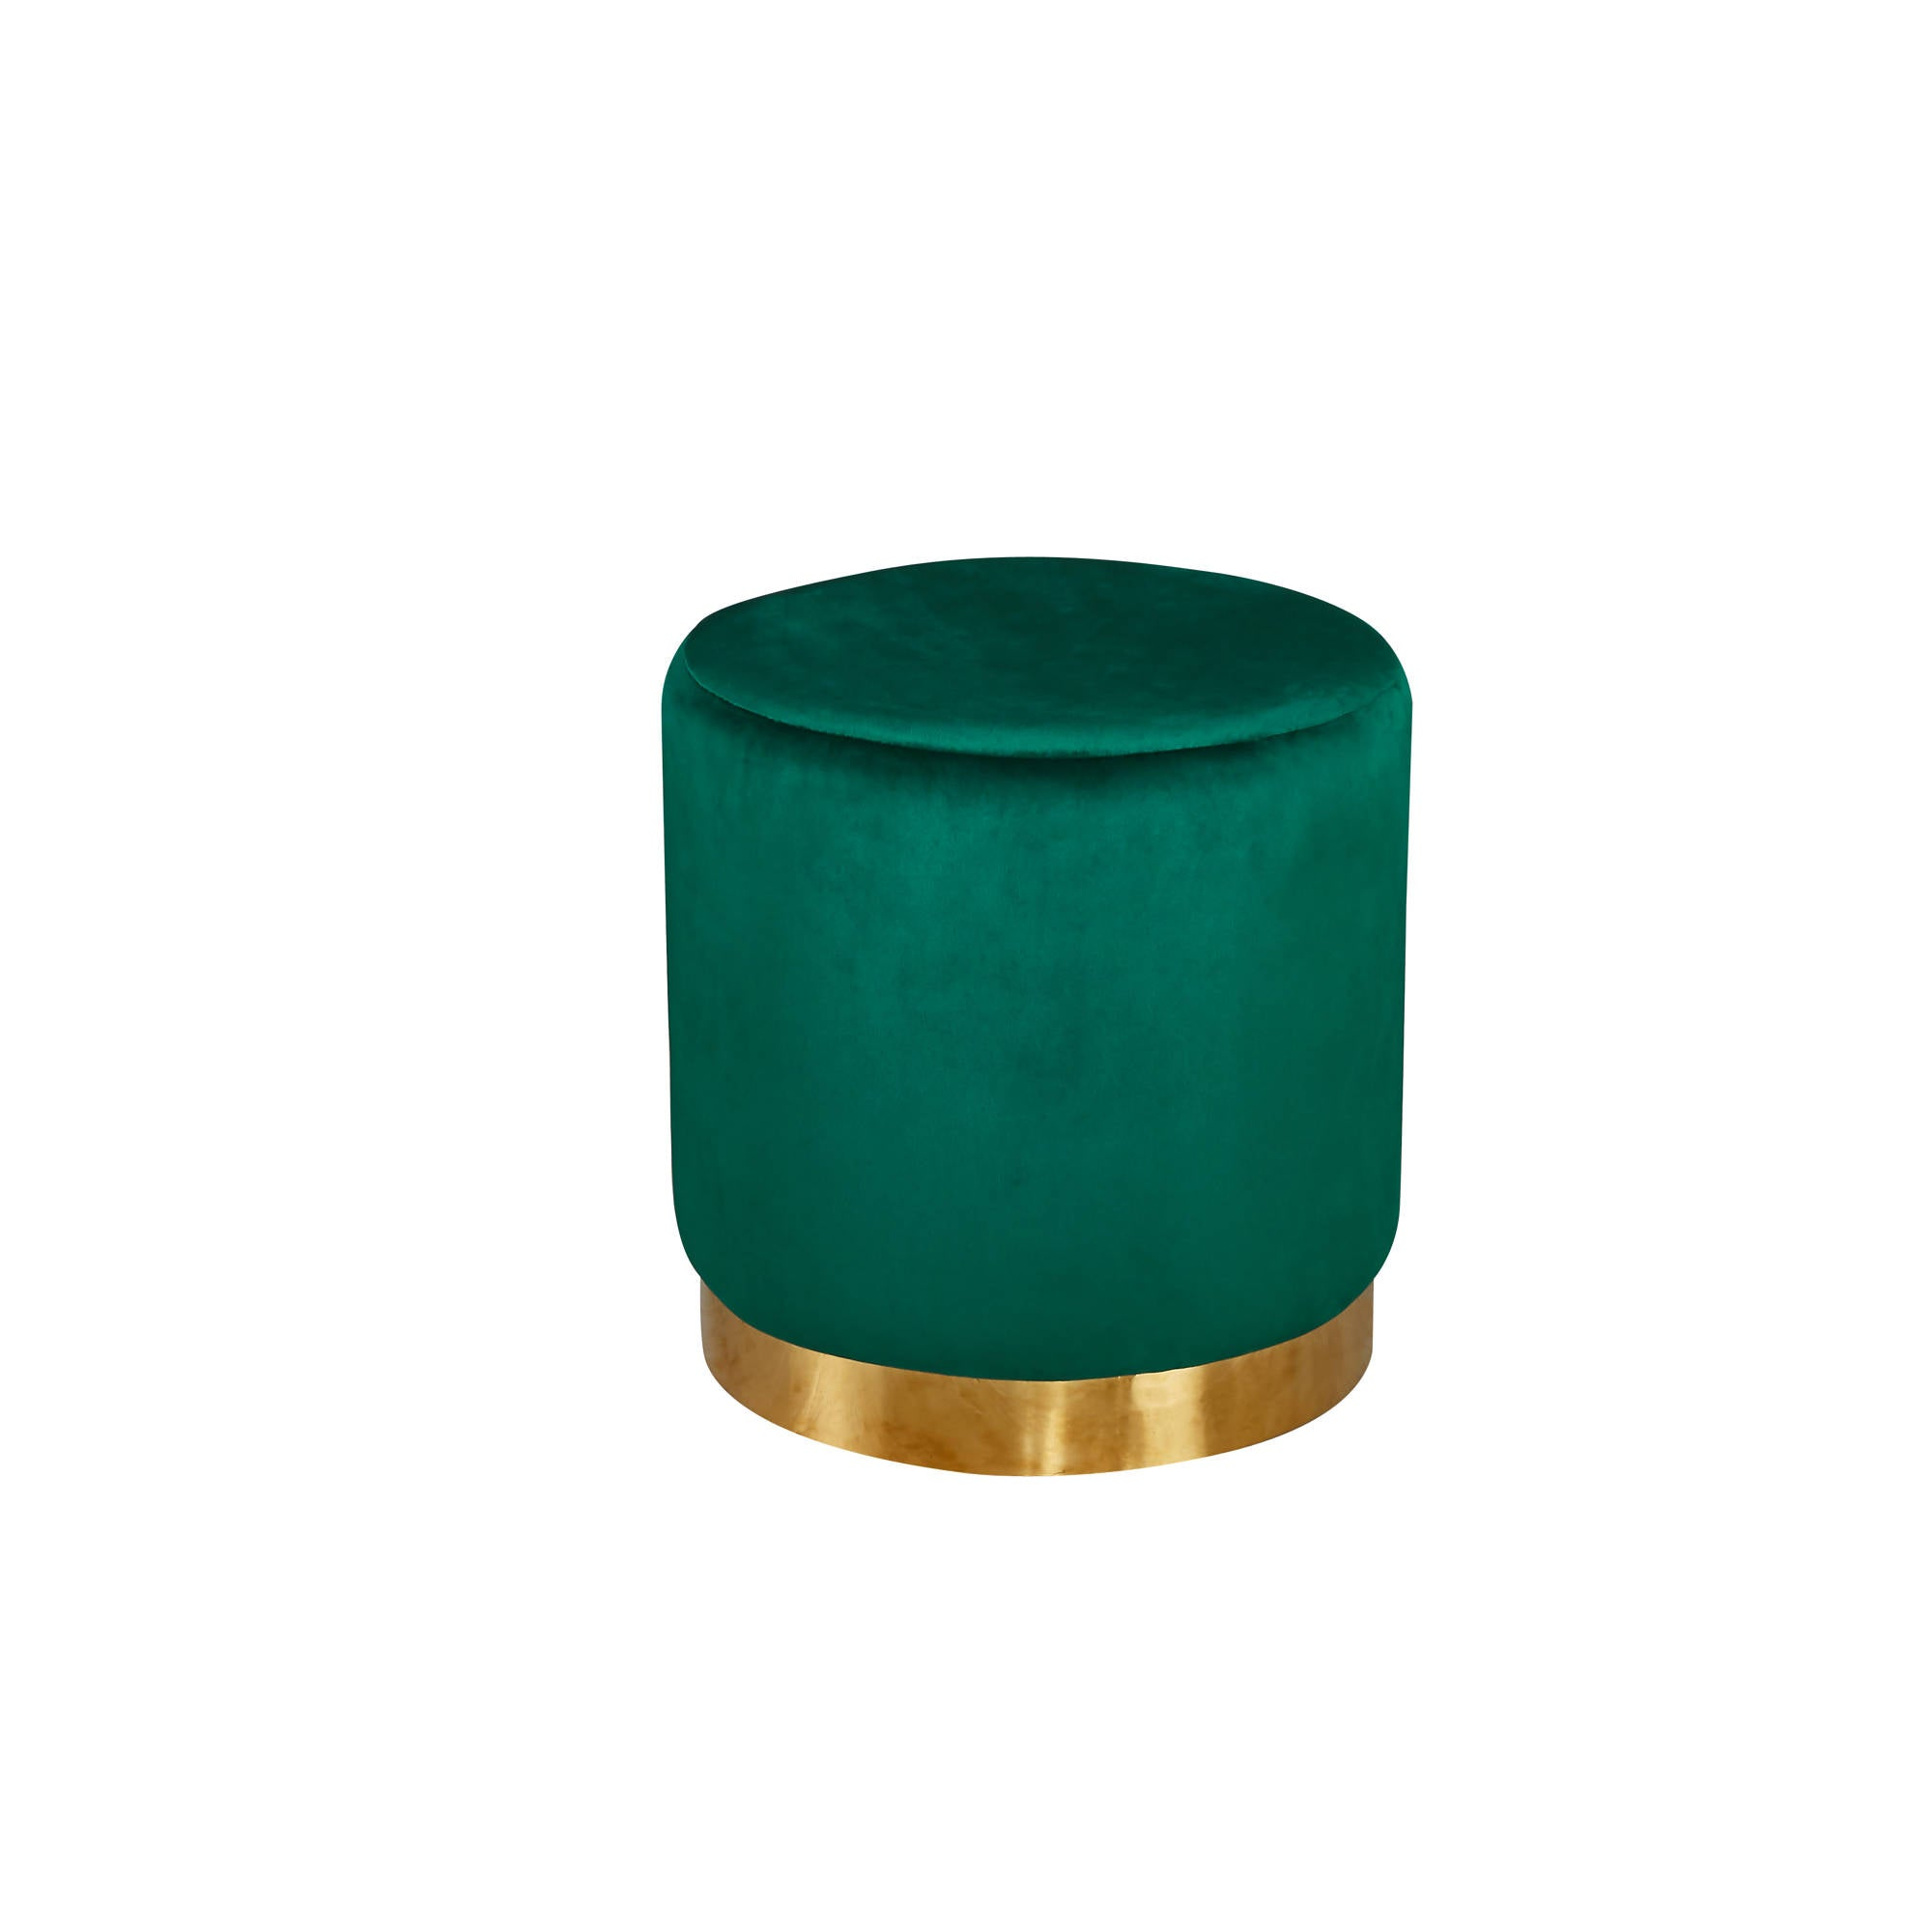 Lares Pouff in Forest Green - Ezzo